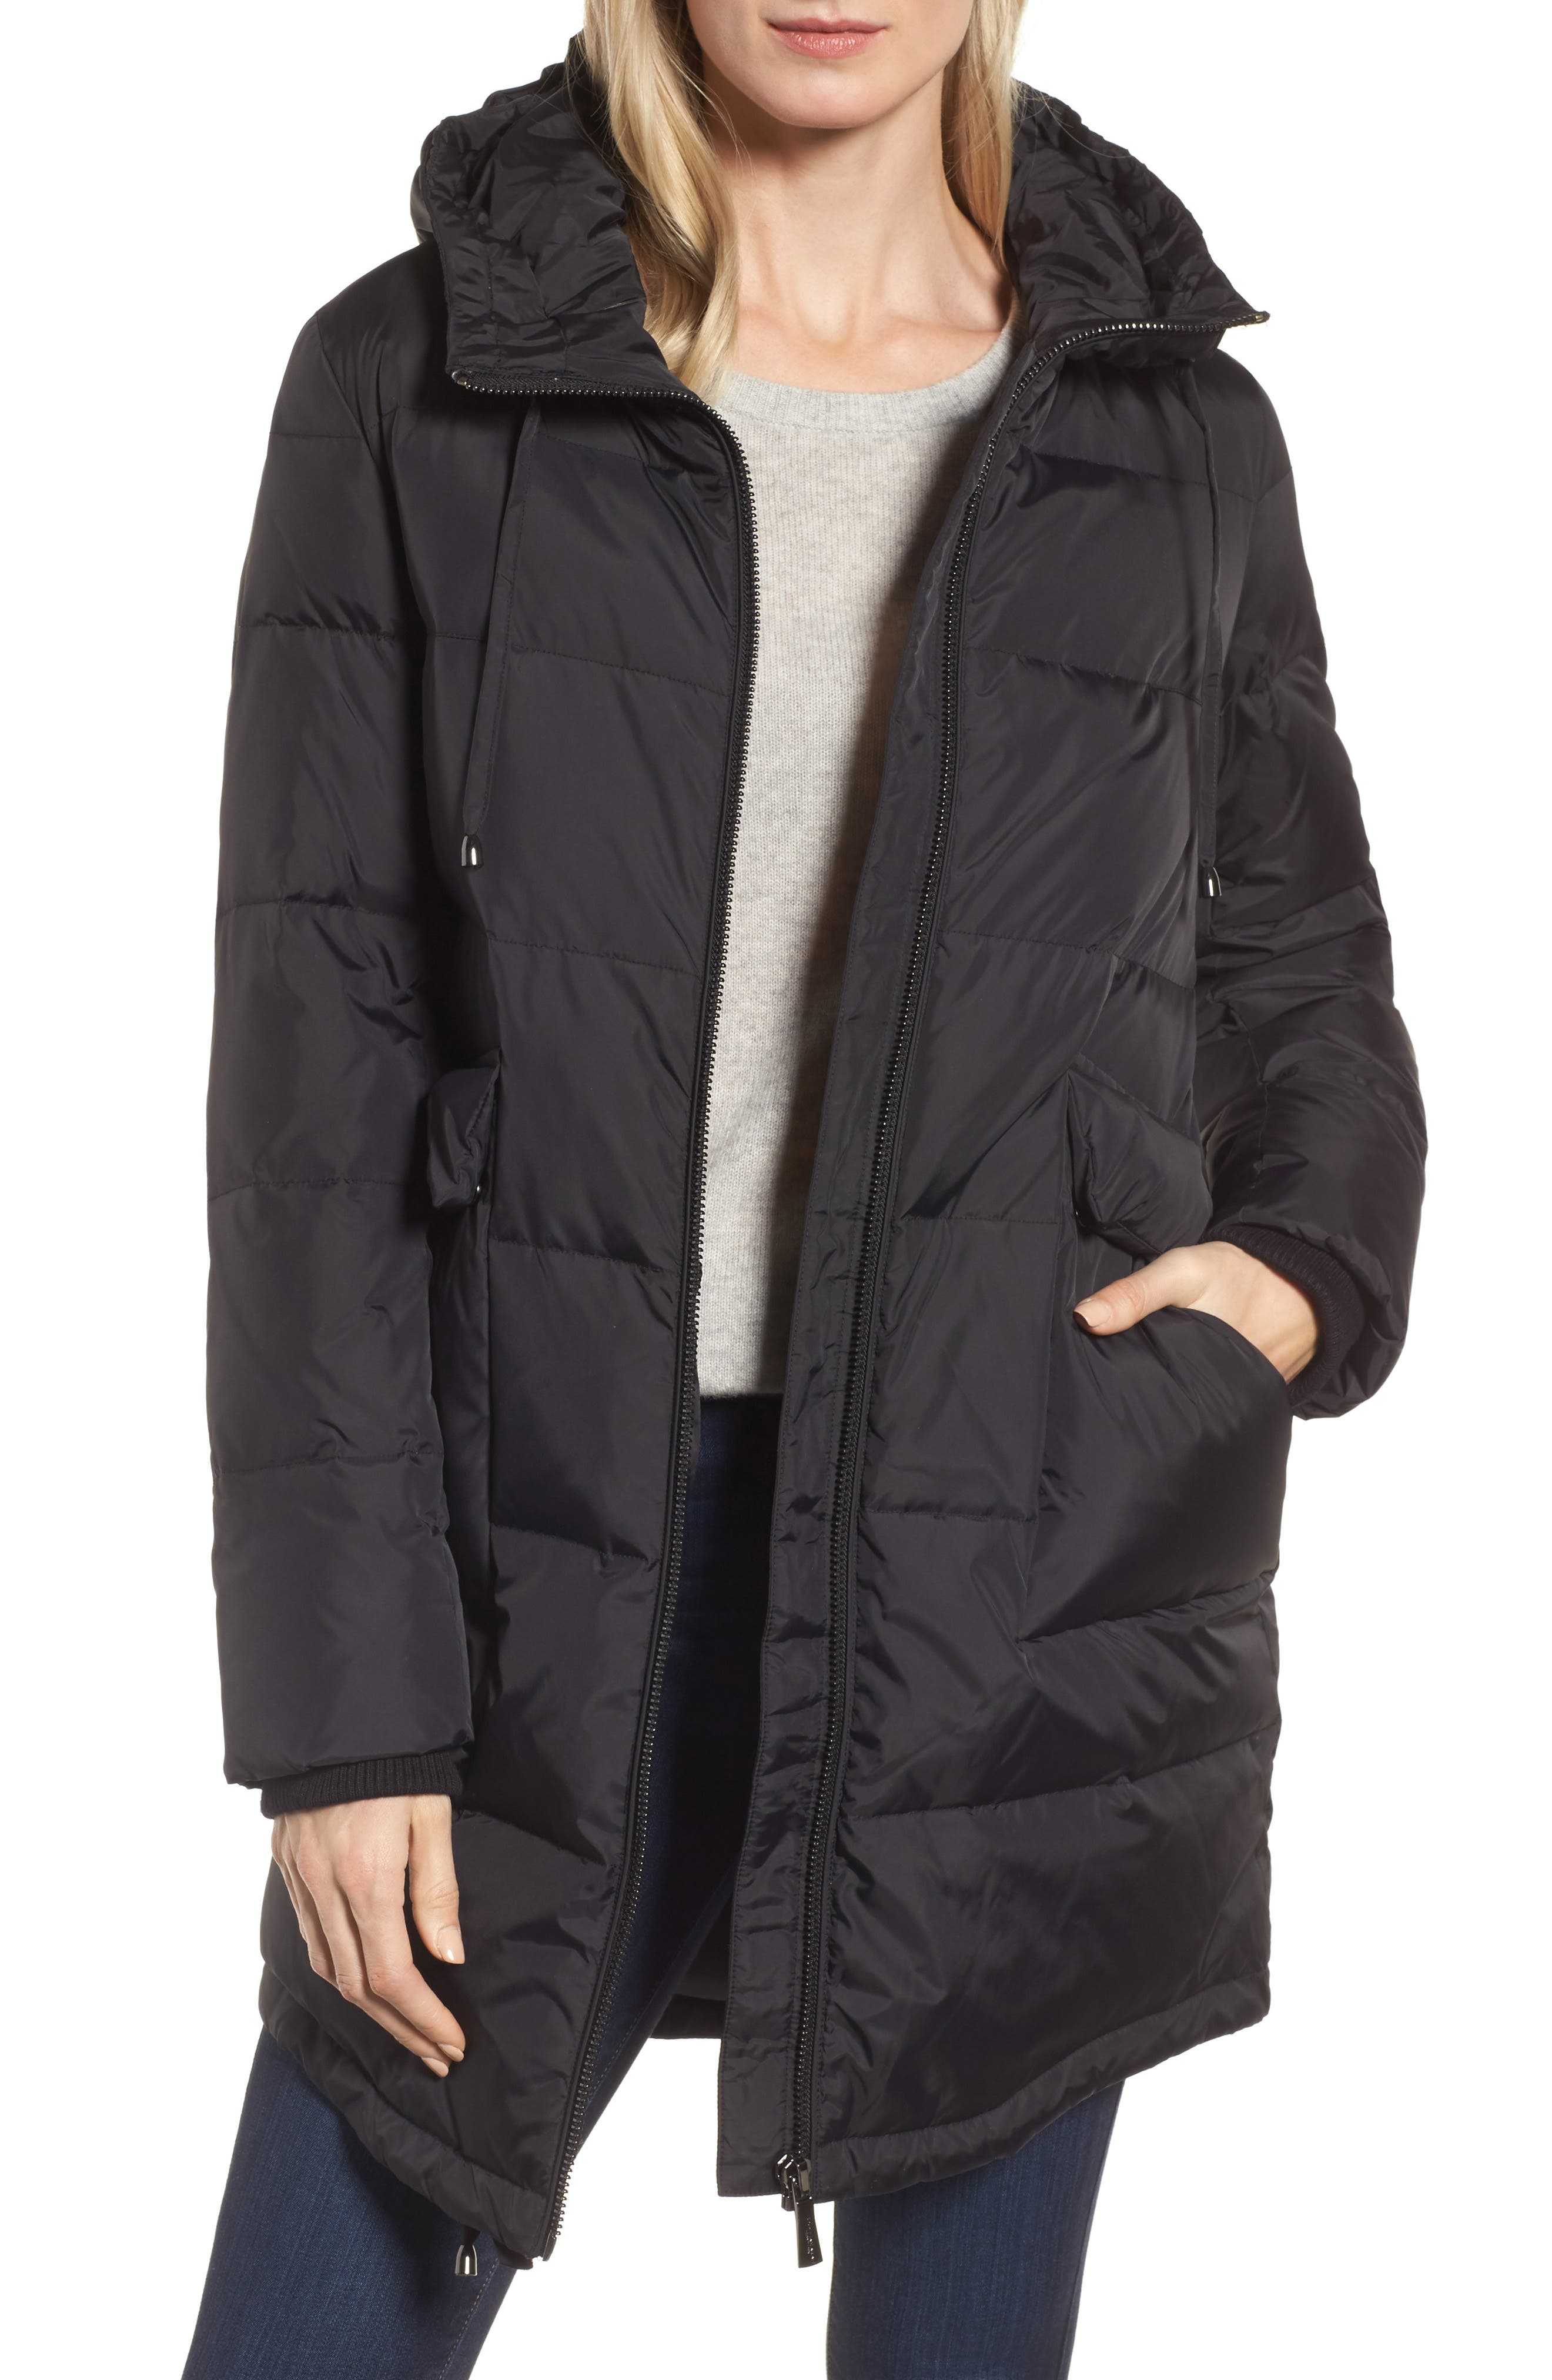 DKNY Water Resistant Insulated Puffer Coat